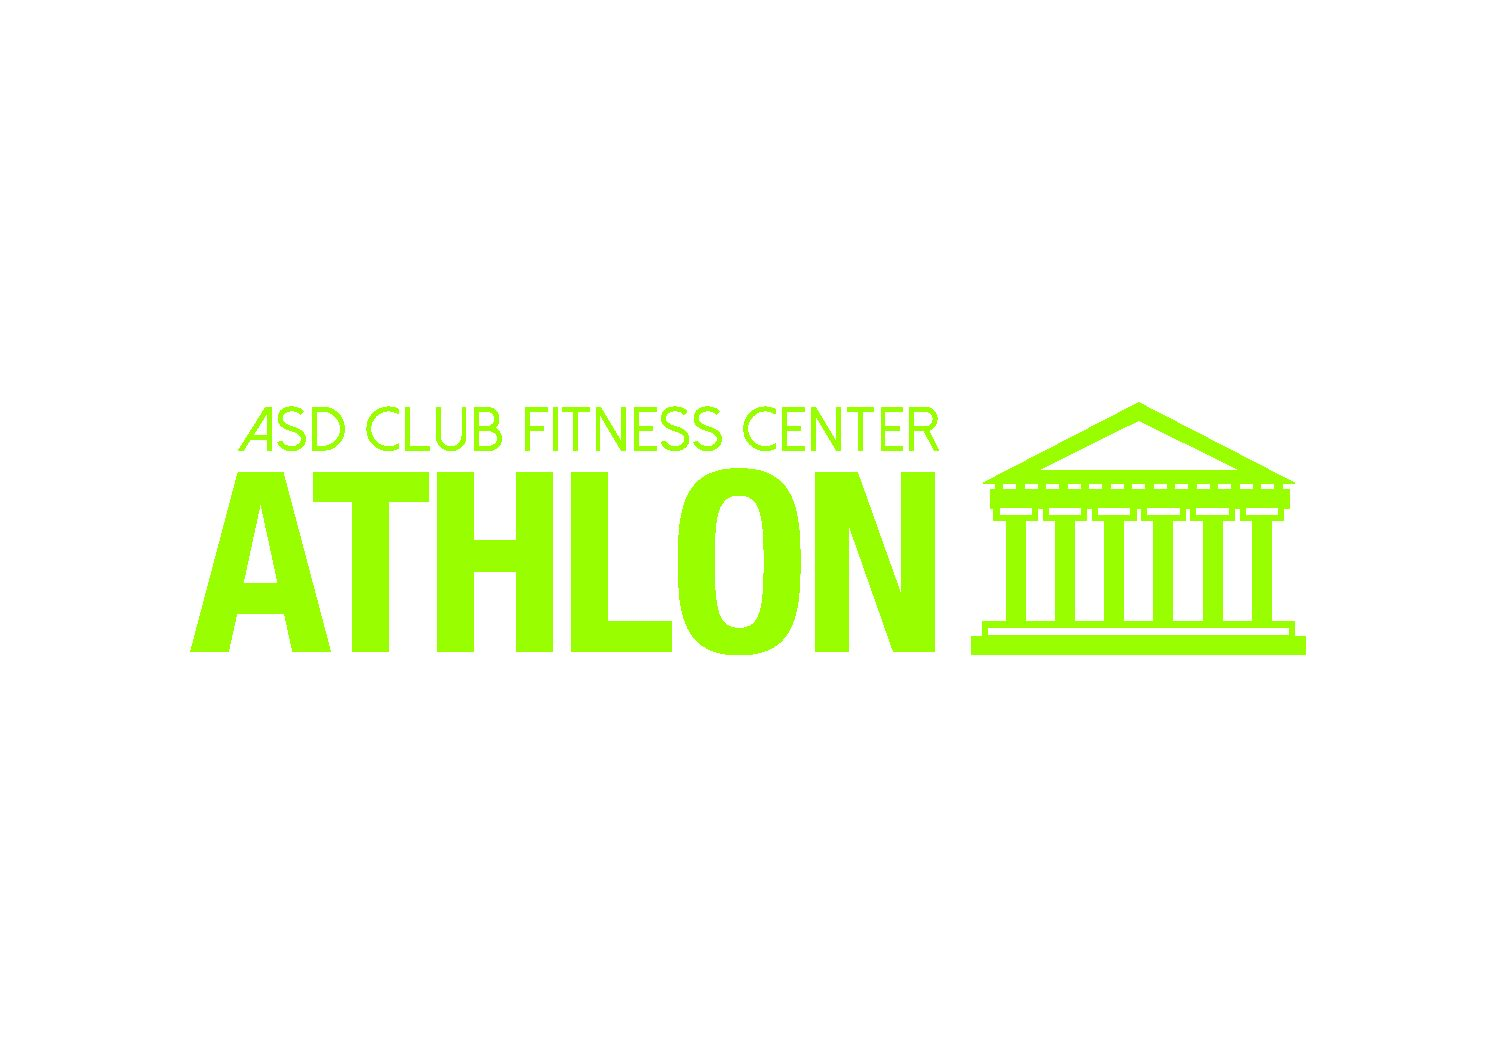 Fitness Center Athlon